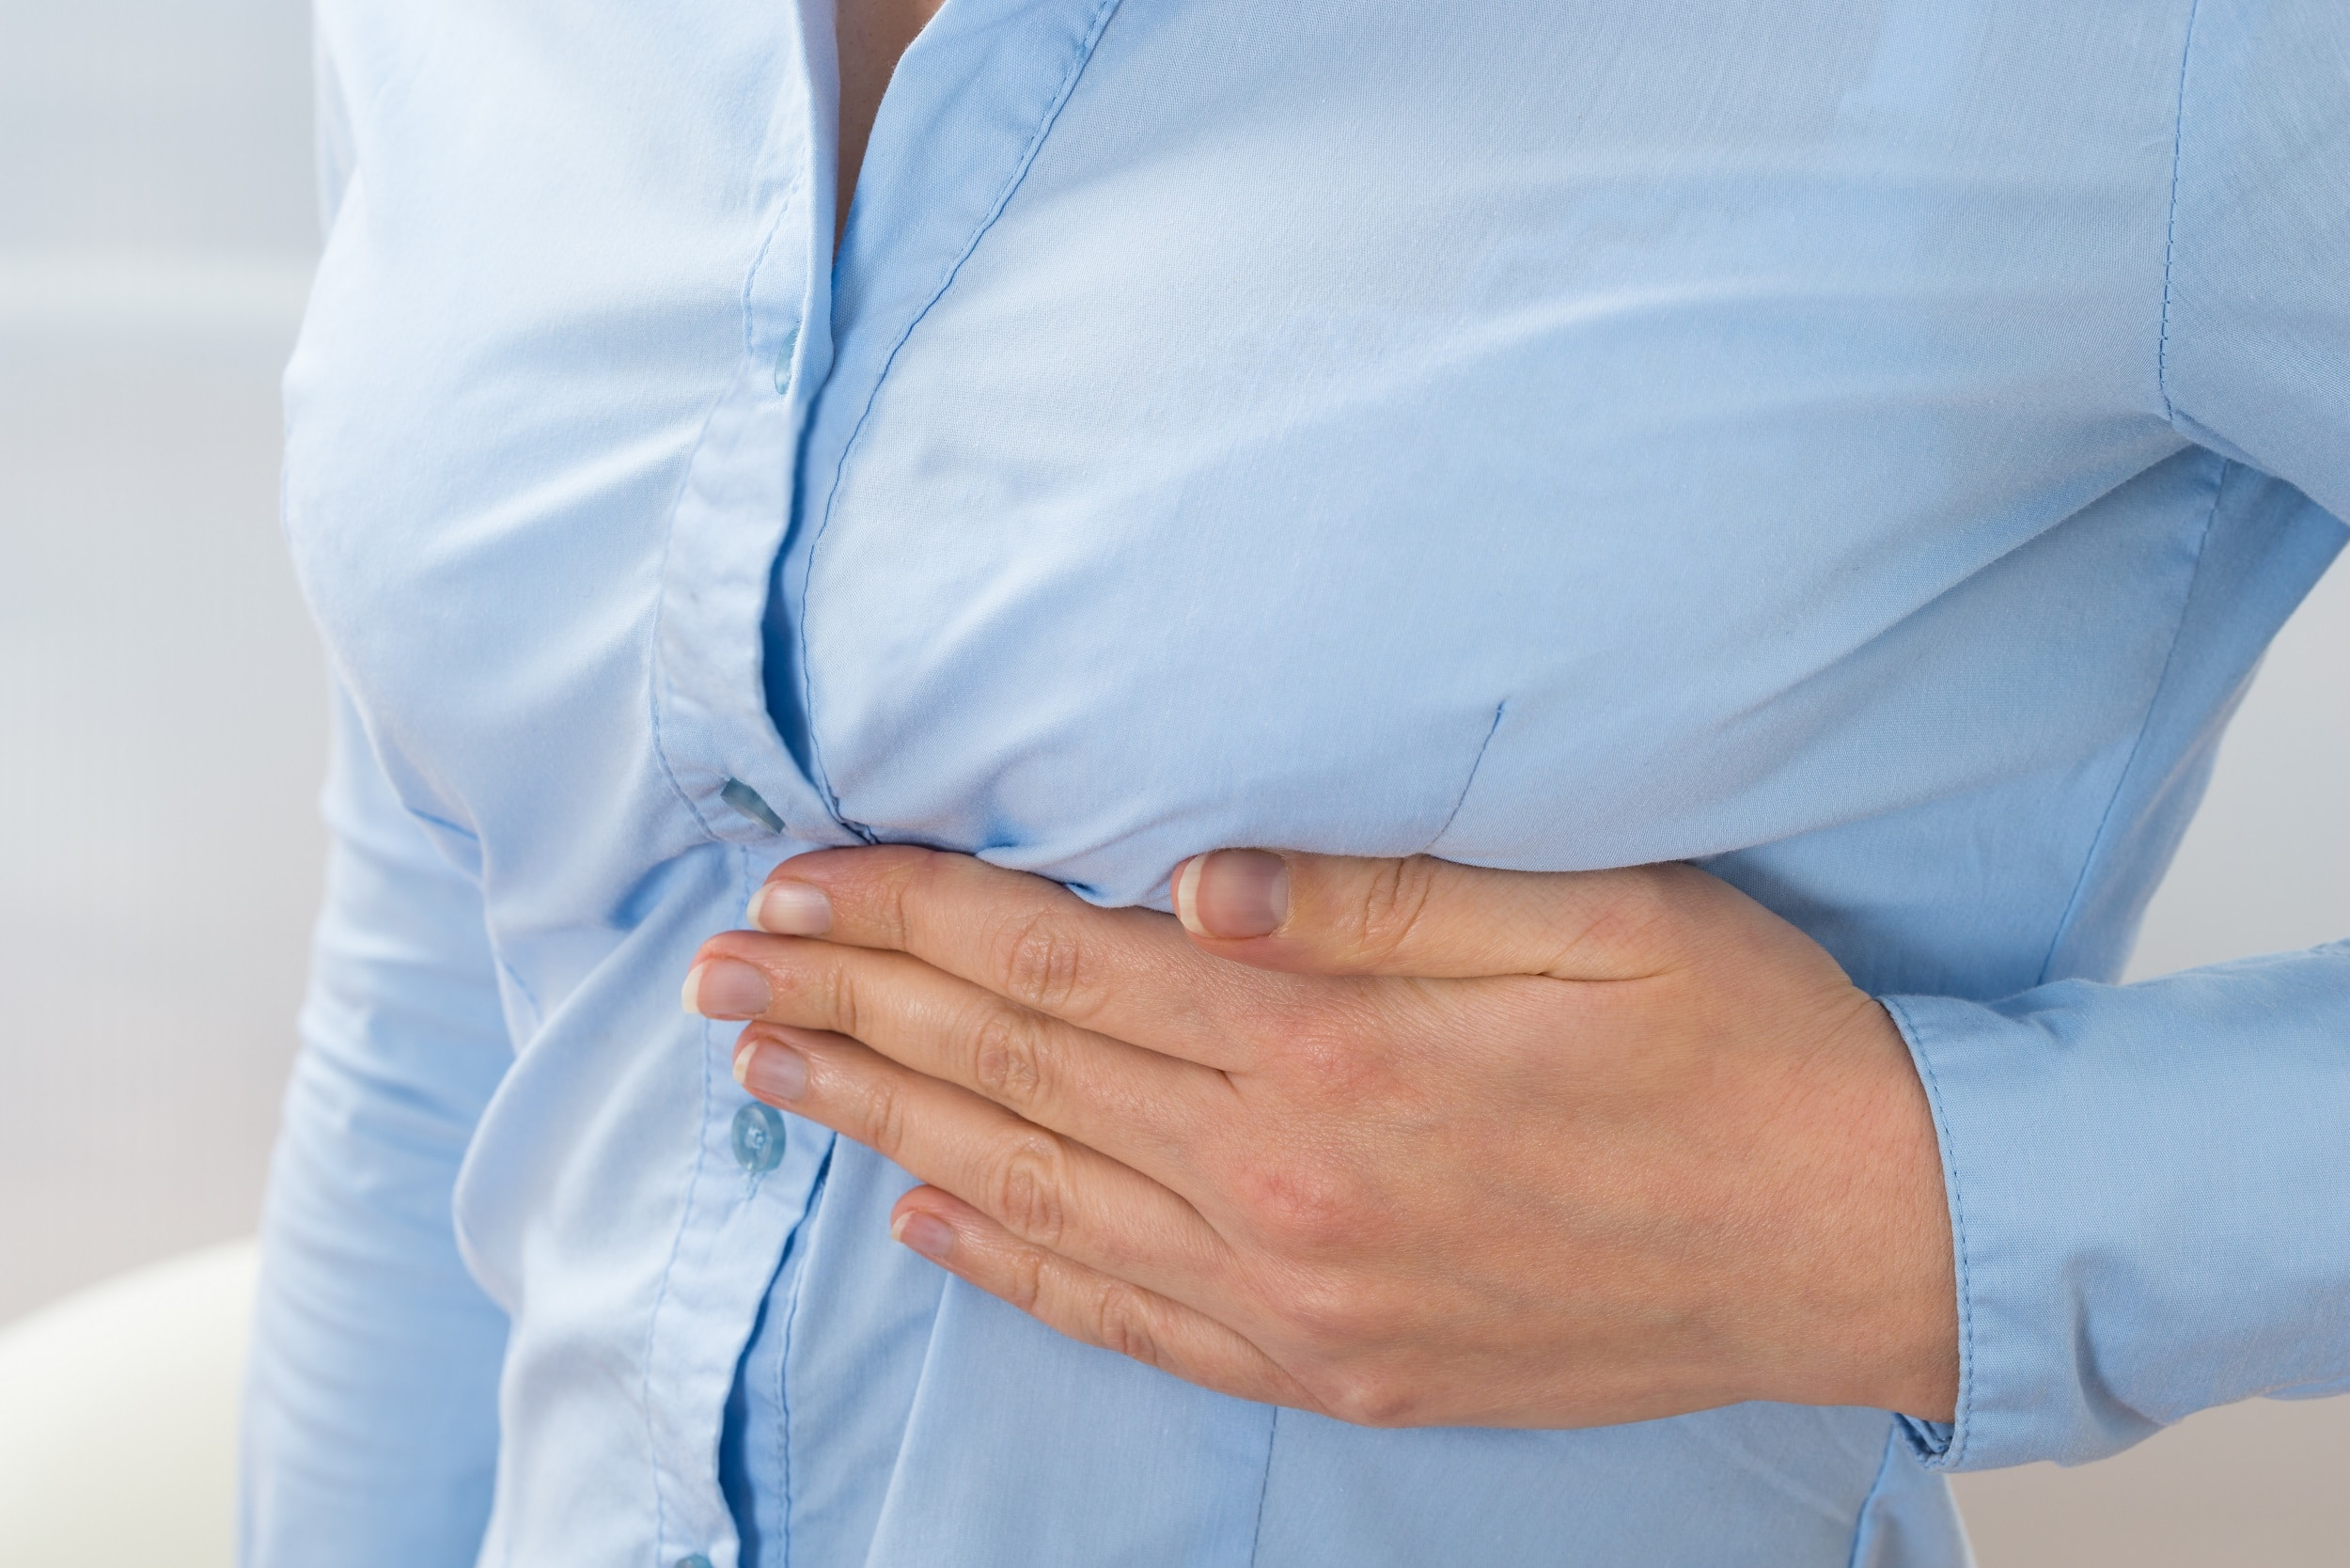 5 Tips on What To Do With Bruised Ribs